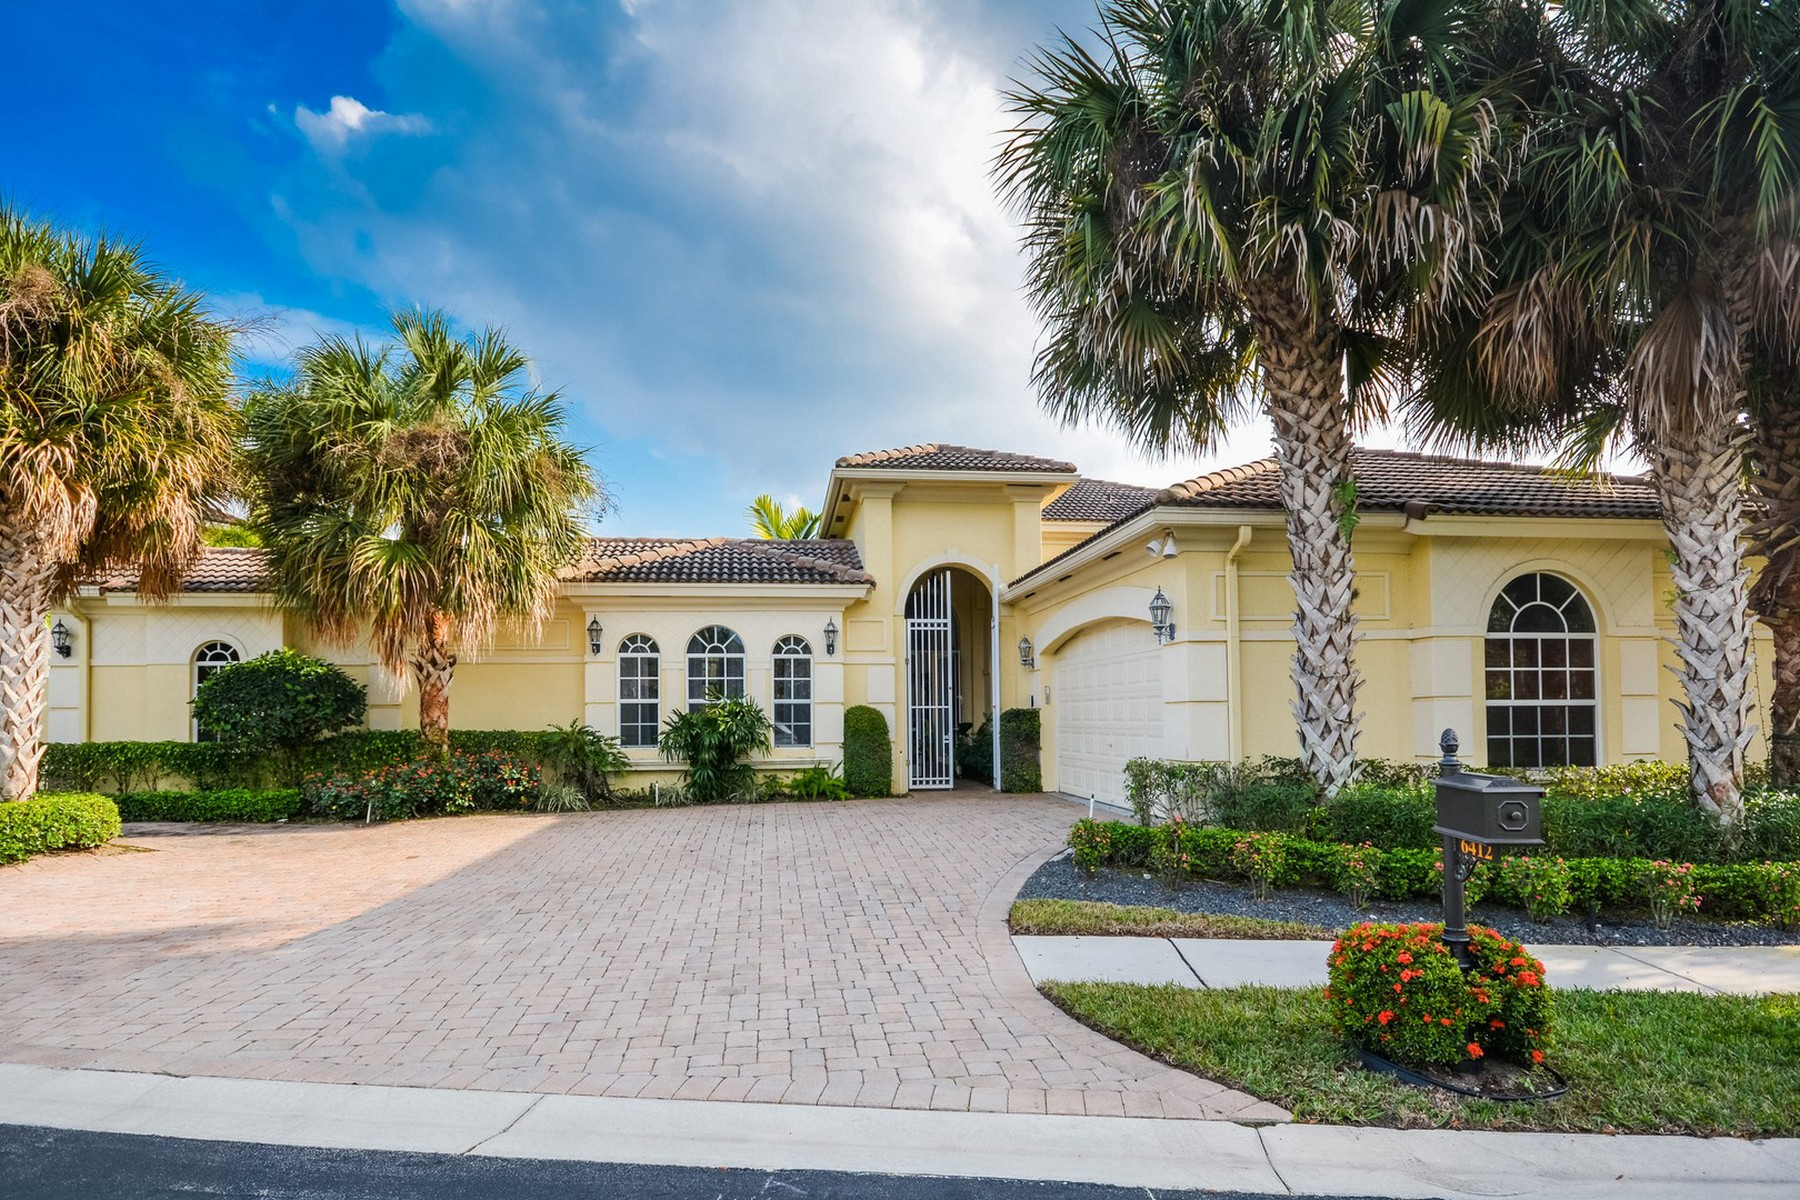 Single Family Home for Sale at 6412 Polo Pointe Way , Delray Beach, FL 33484 6412 Polo Pointe Way Delray Beach, Florida, 33484 United States